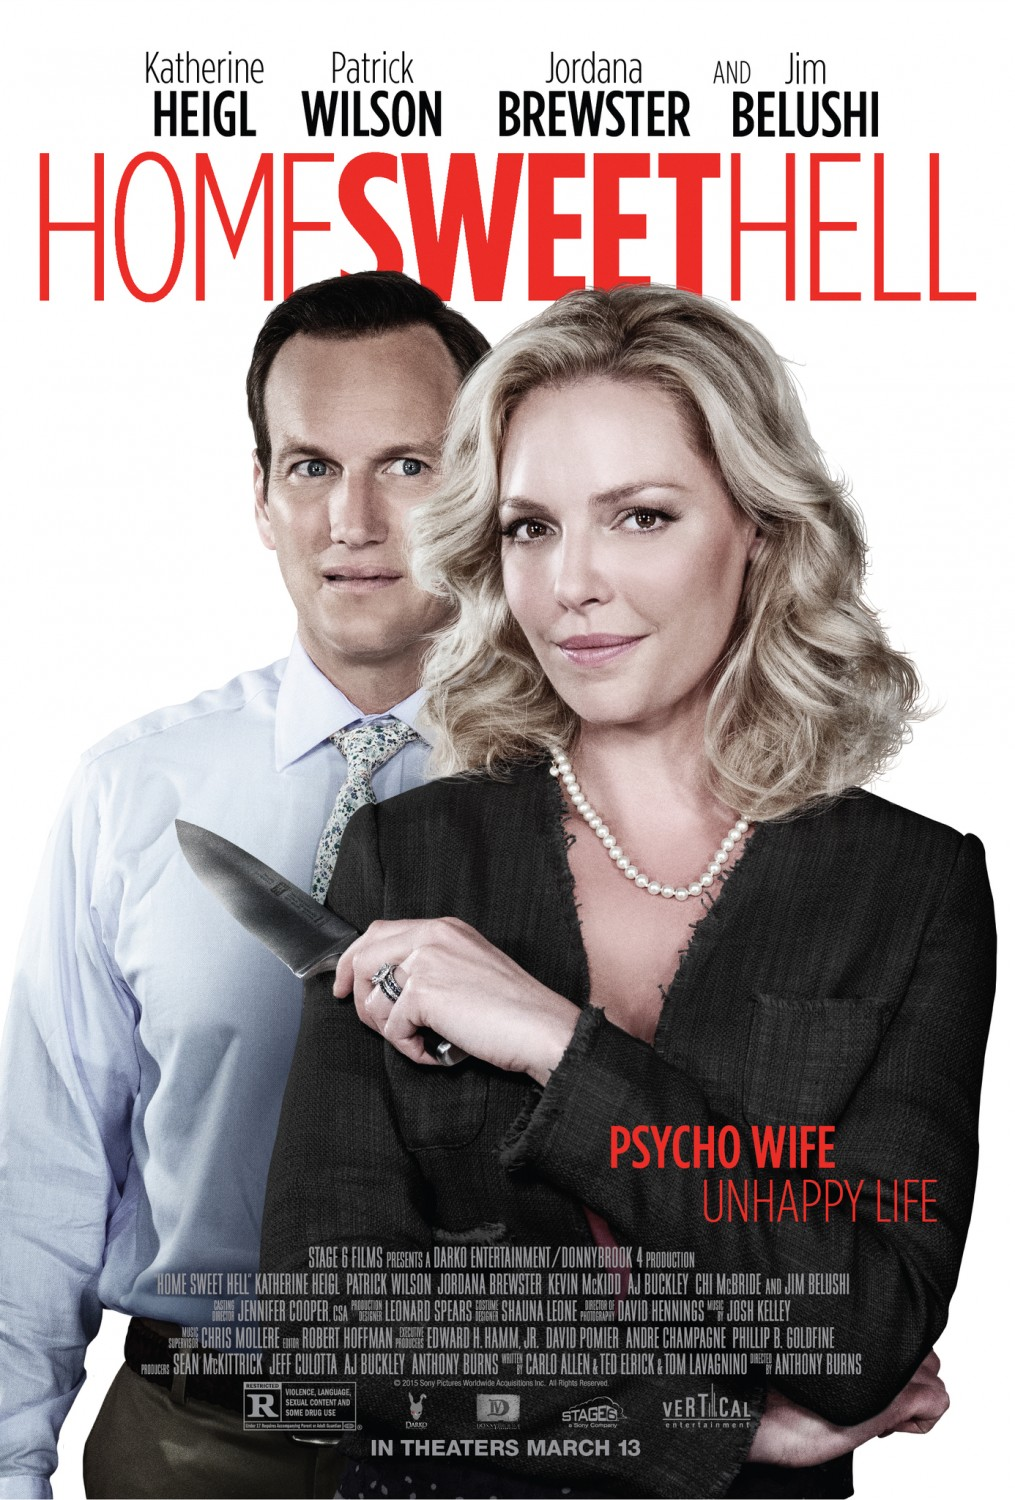 HOME SWEET HELL - Music by Josh KelleyMusic Editing by Jessica Weiss